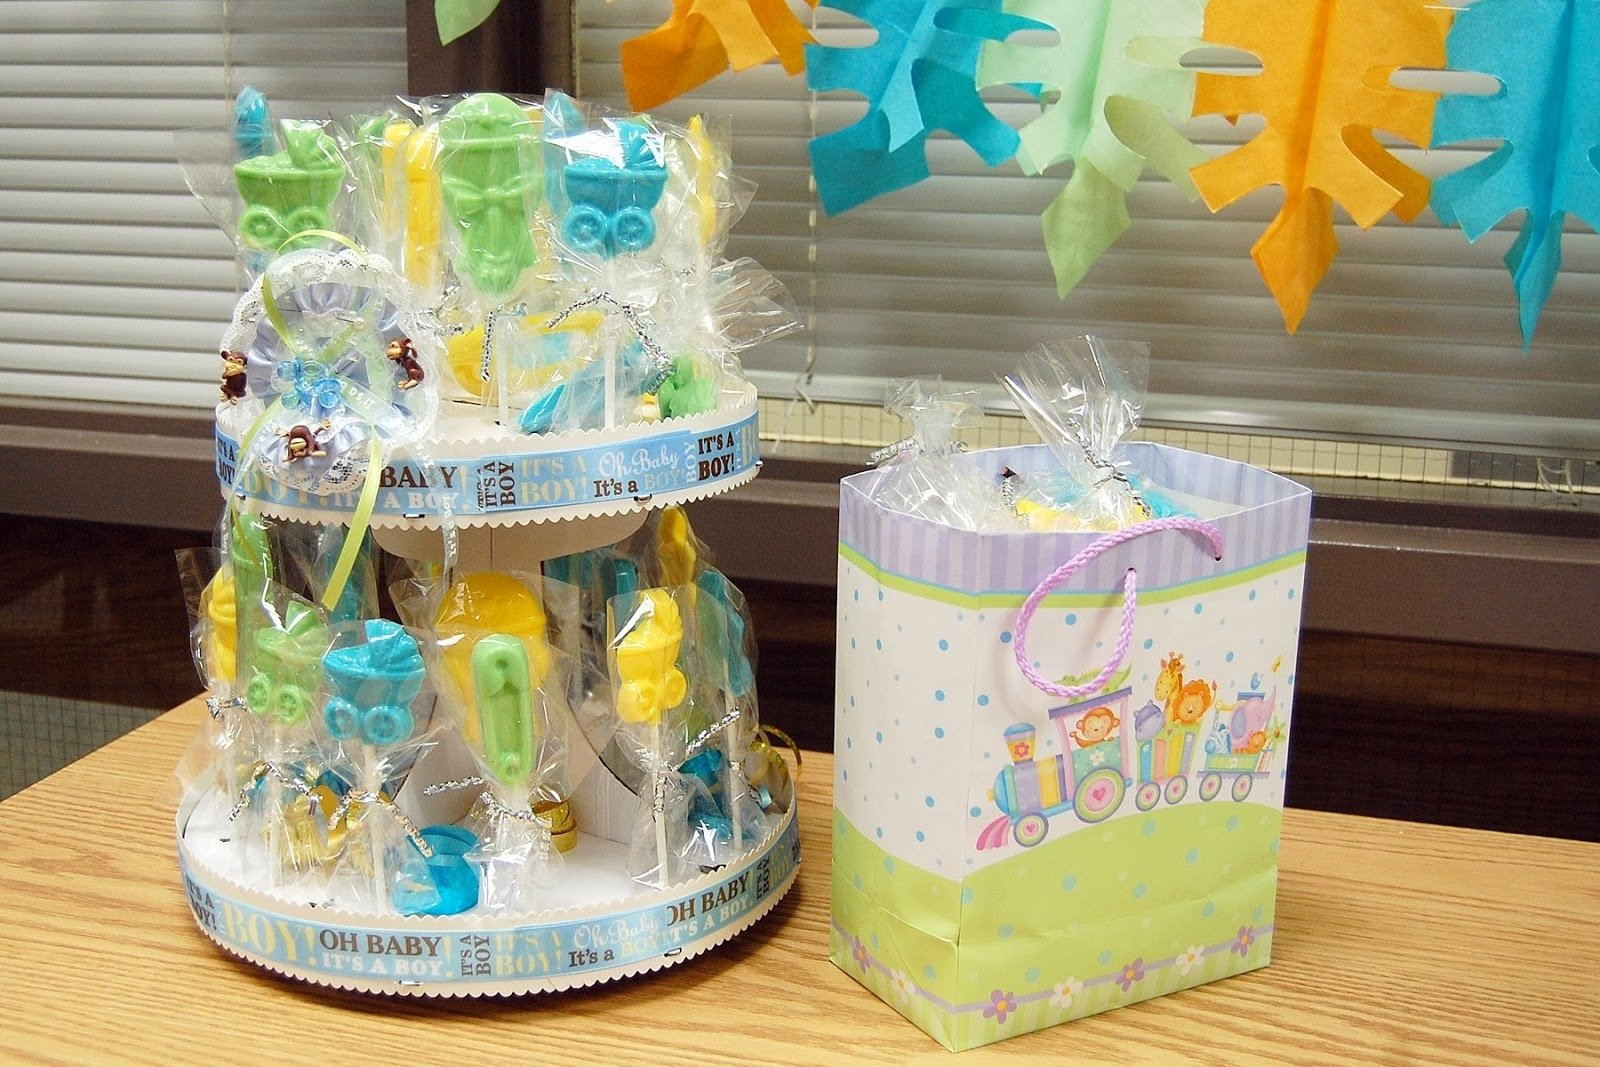 10 Cute Cute Baby Shower Gift Ideas photo baby shower gifts and image 1 2020